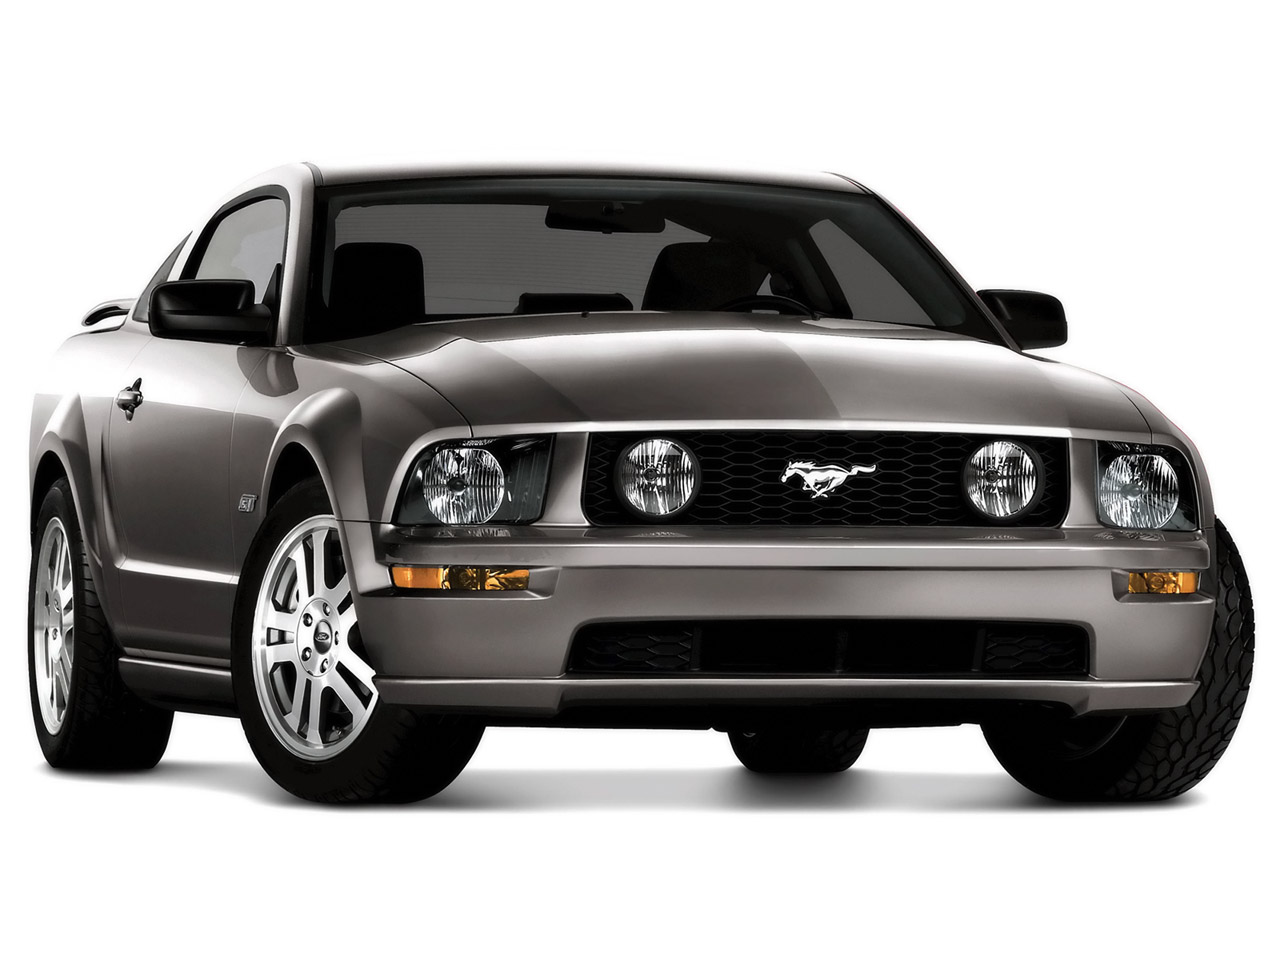 2006 ford mustang images photo ford mustang 06 hr manu. Black Bedroom Furniture Sets. Home Design Ideas